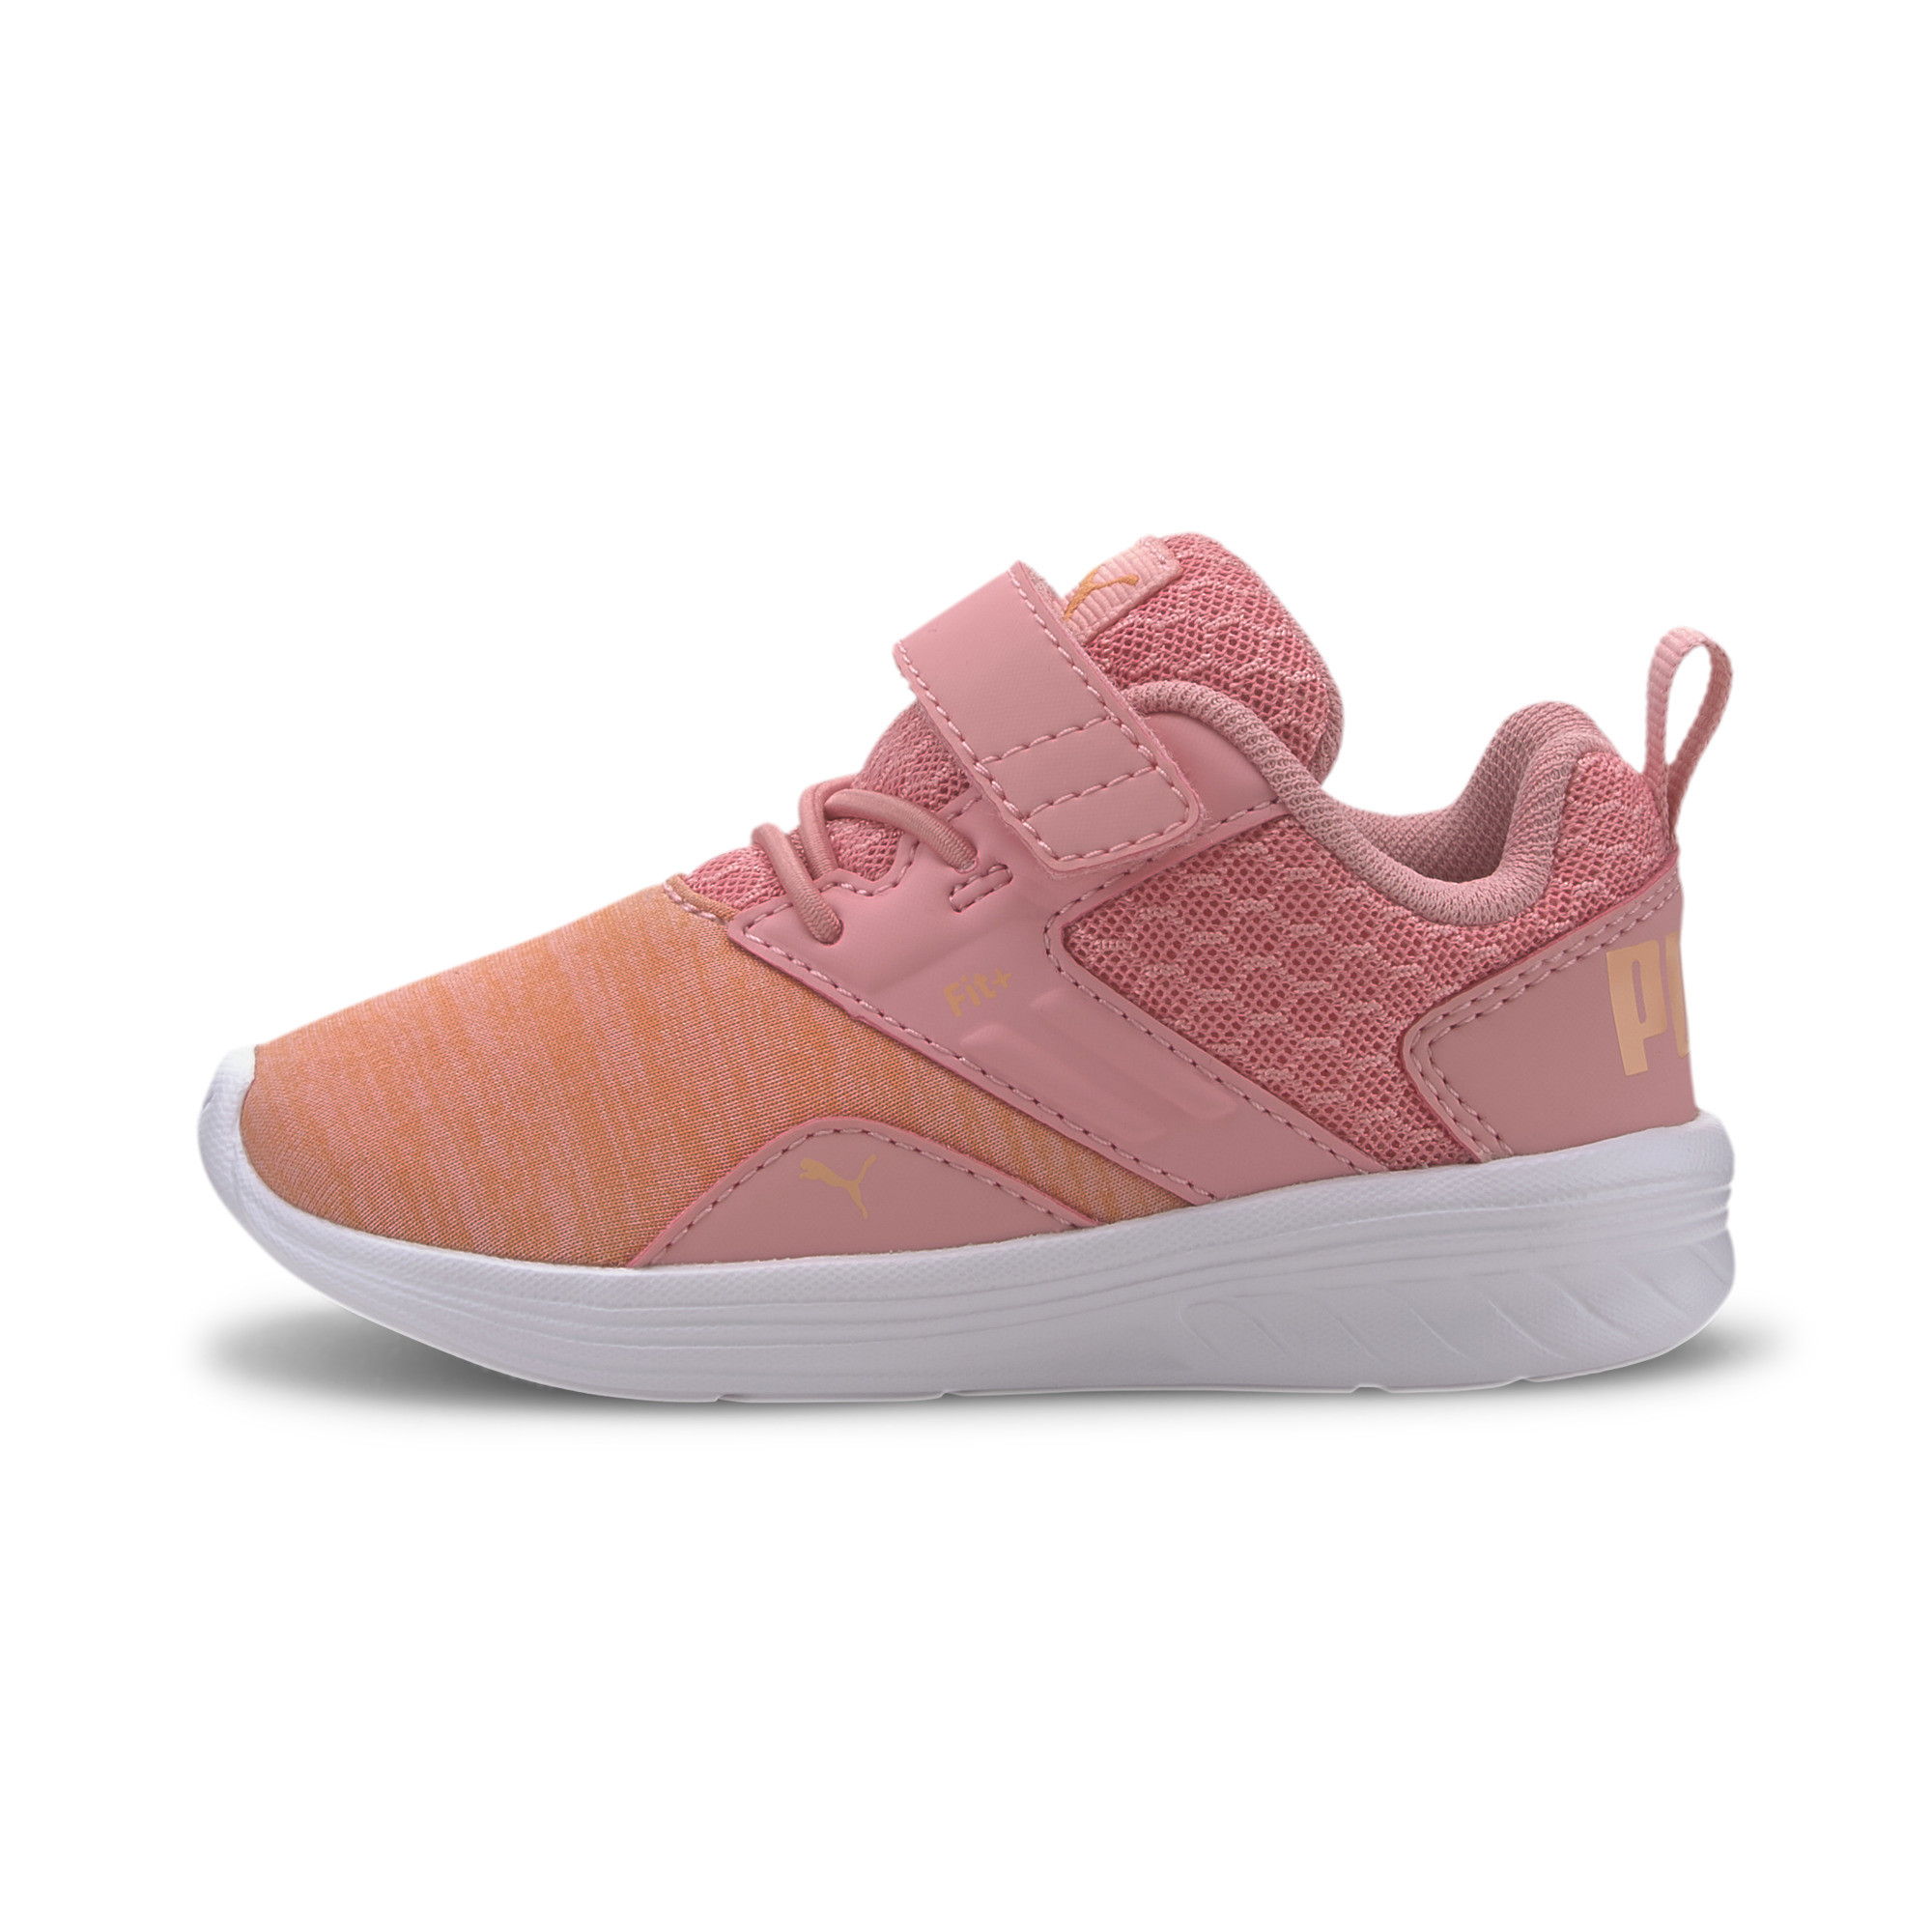 NRGY Comet Baby Running Shoes